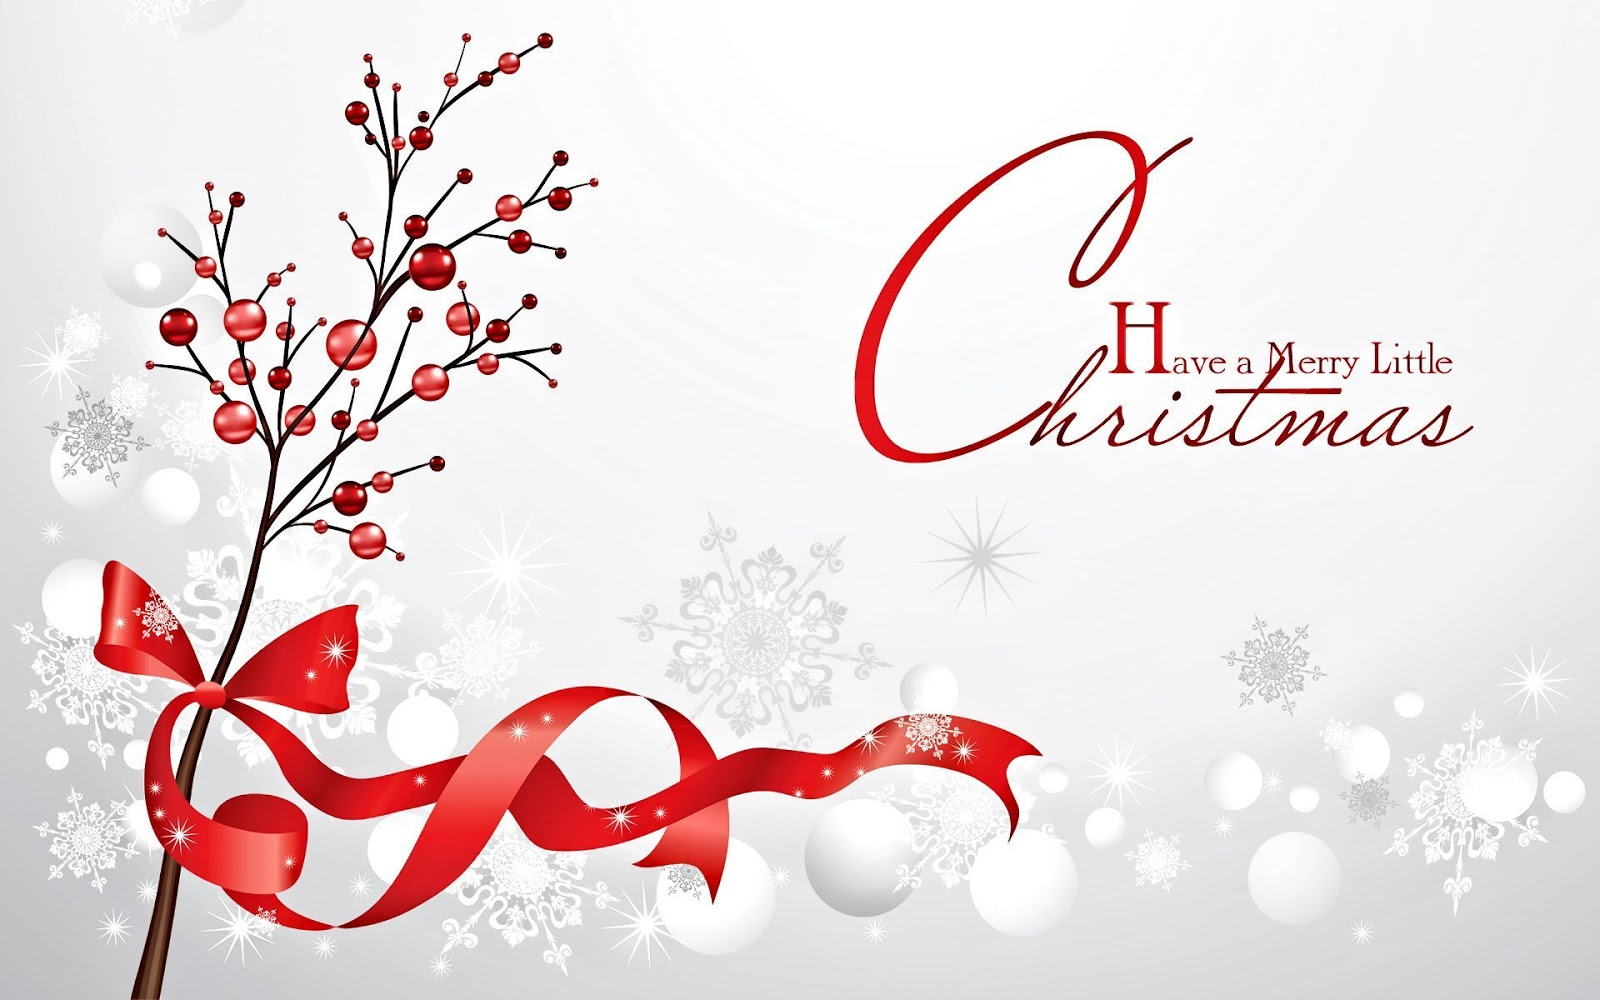 latest christmas greetings wallpapers hd